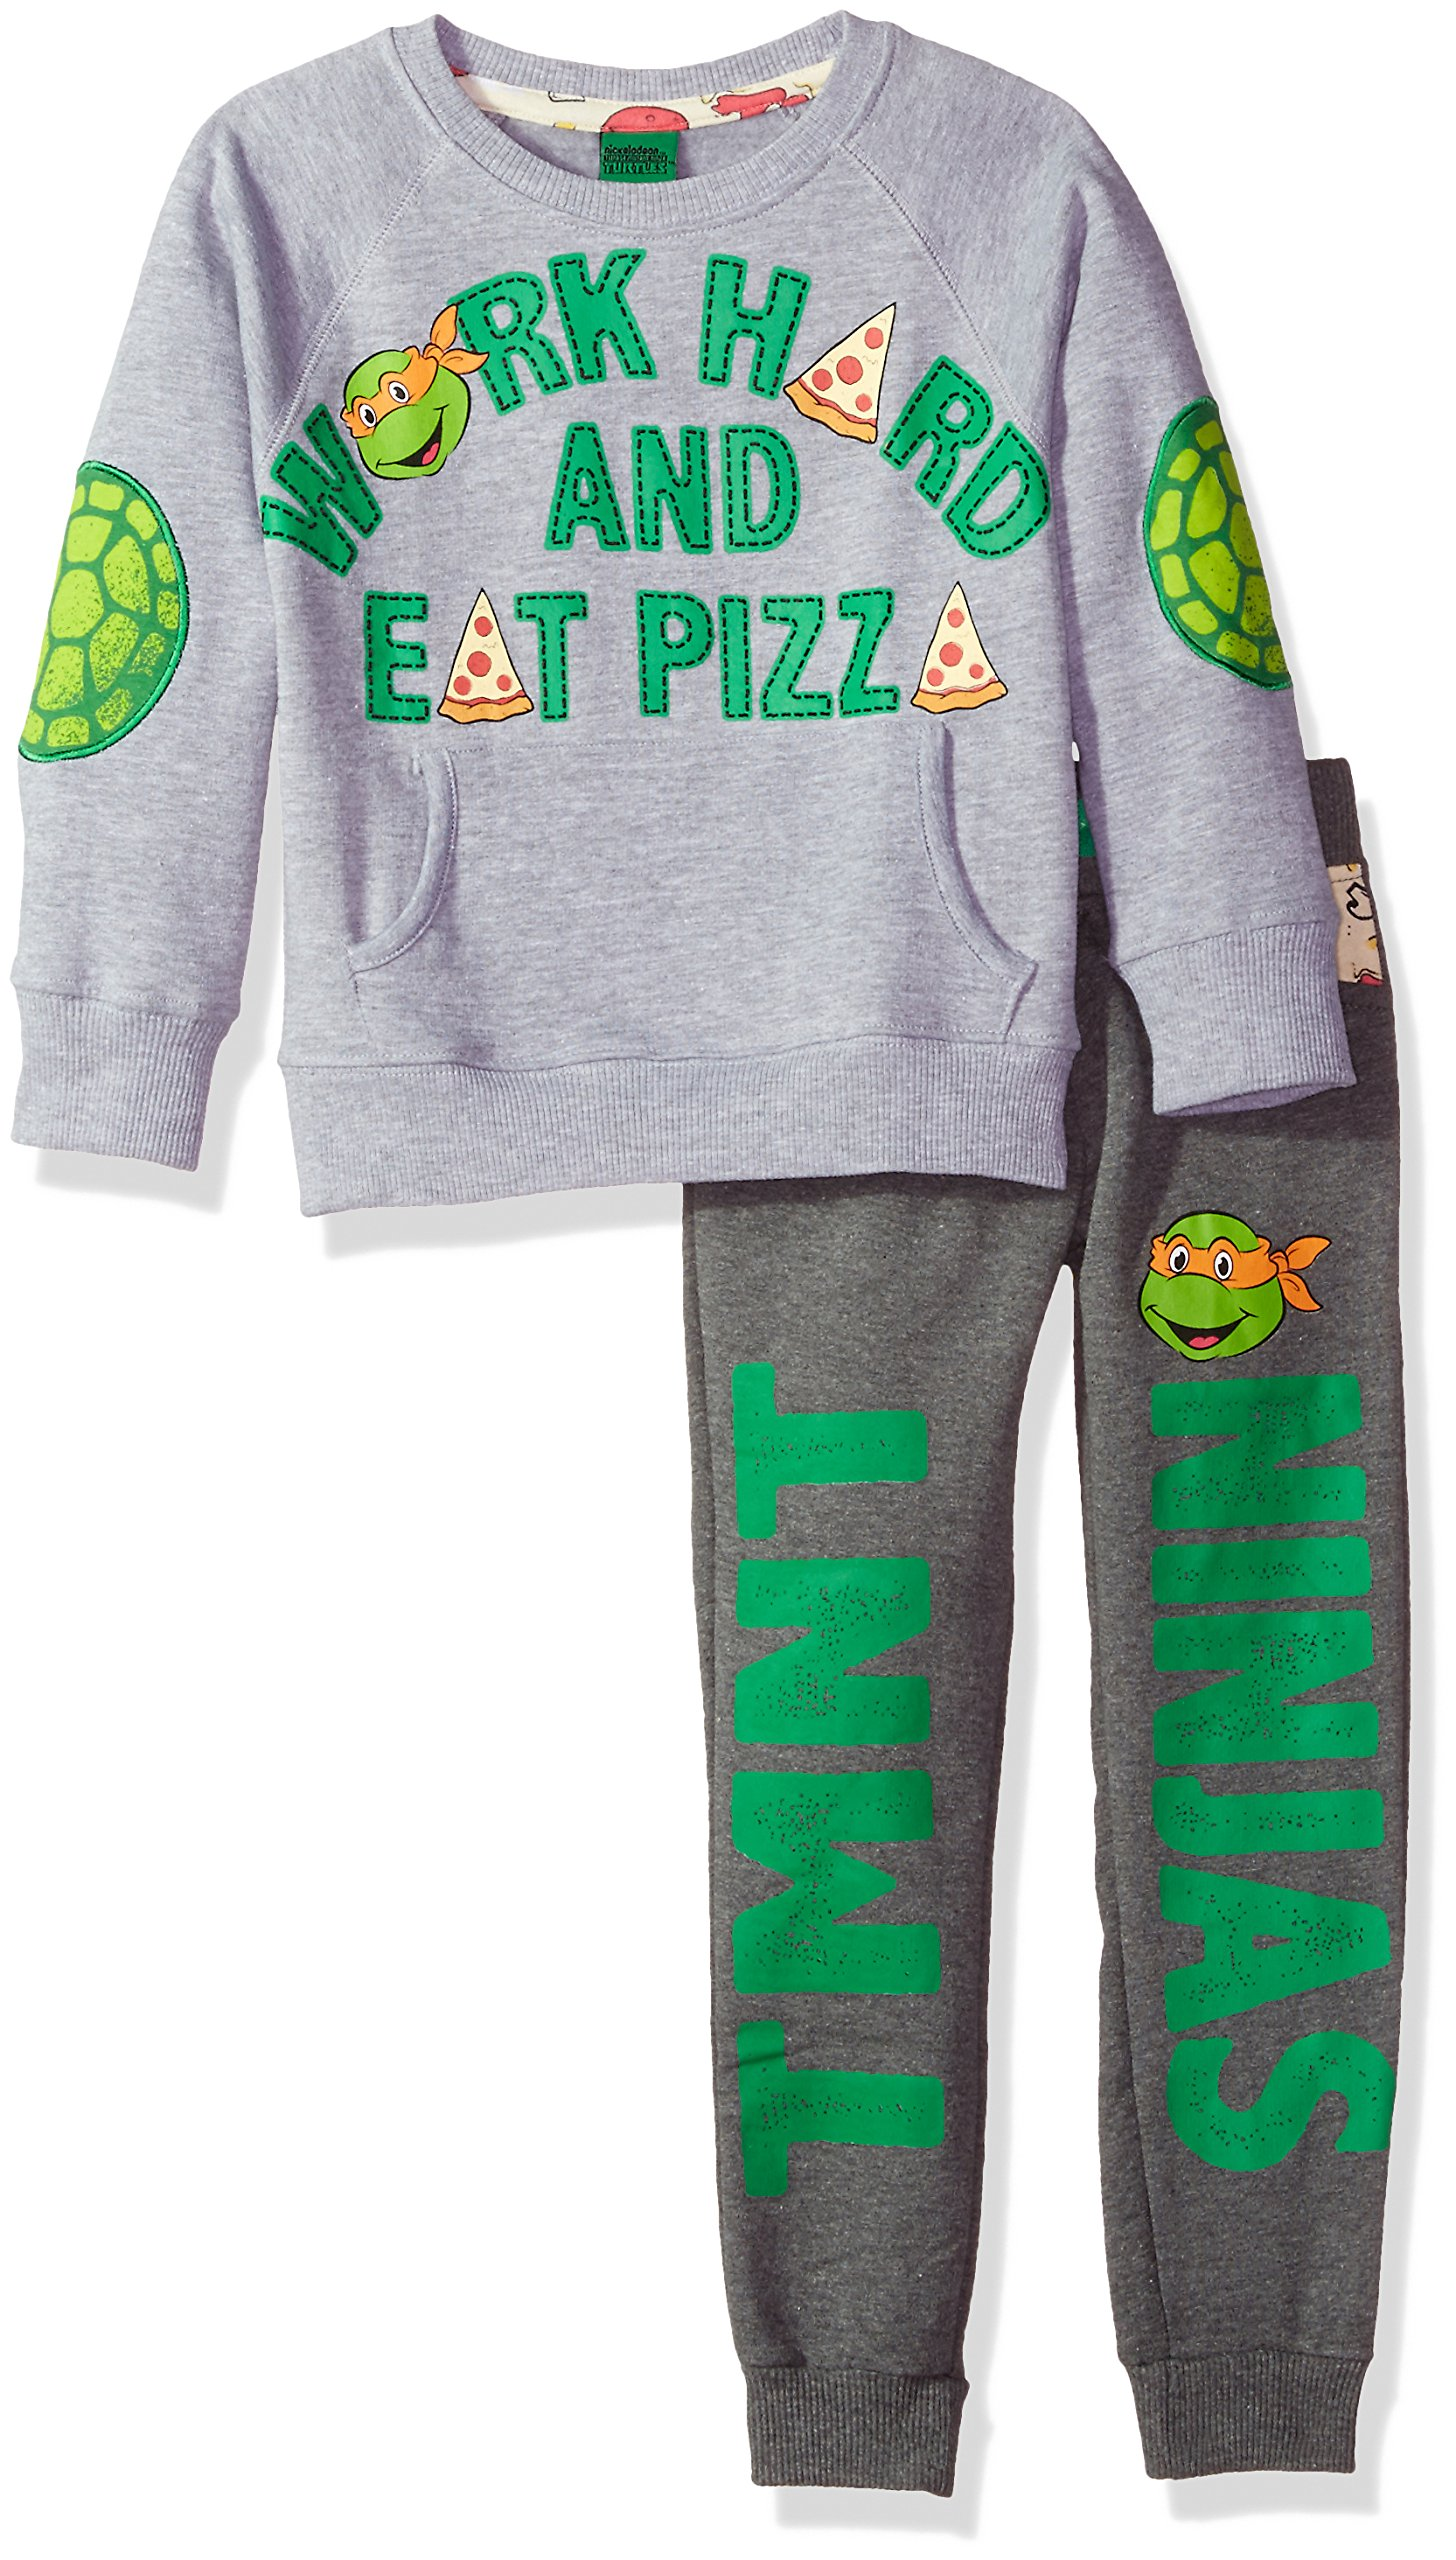 Nickelodeon Toddler Boys TMNT Work Hard and Eat Pizza Jogger Set, Grey, 3T